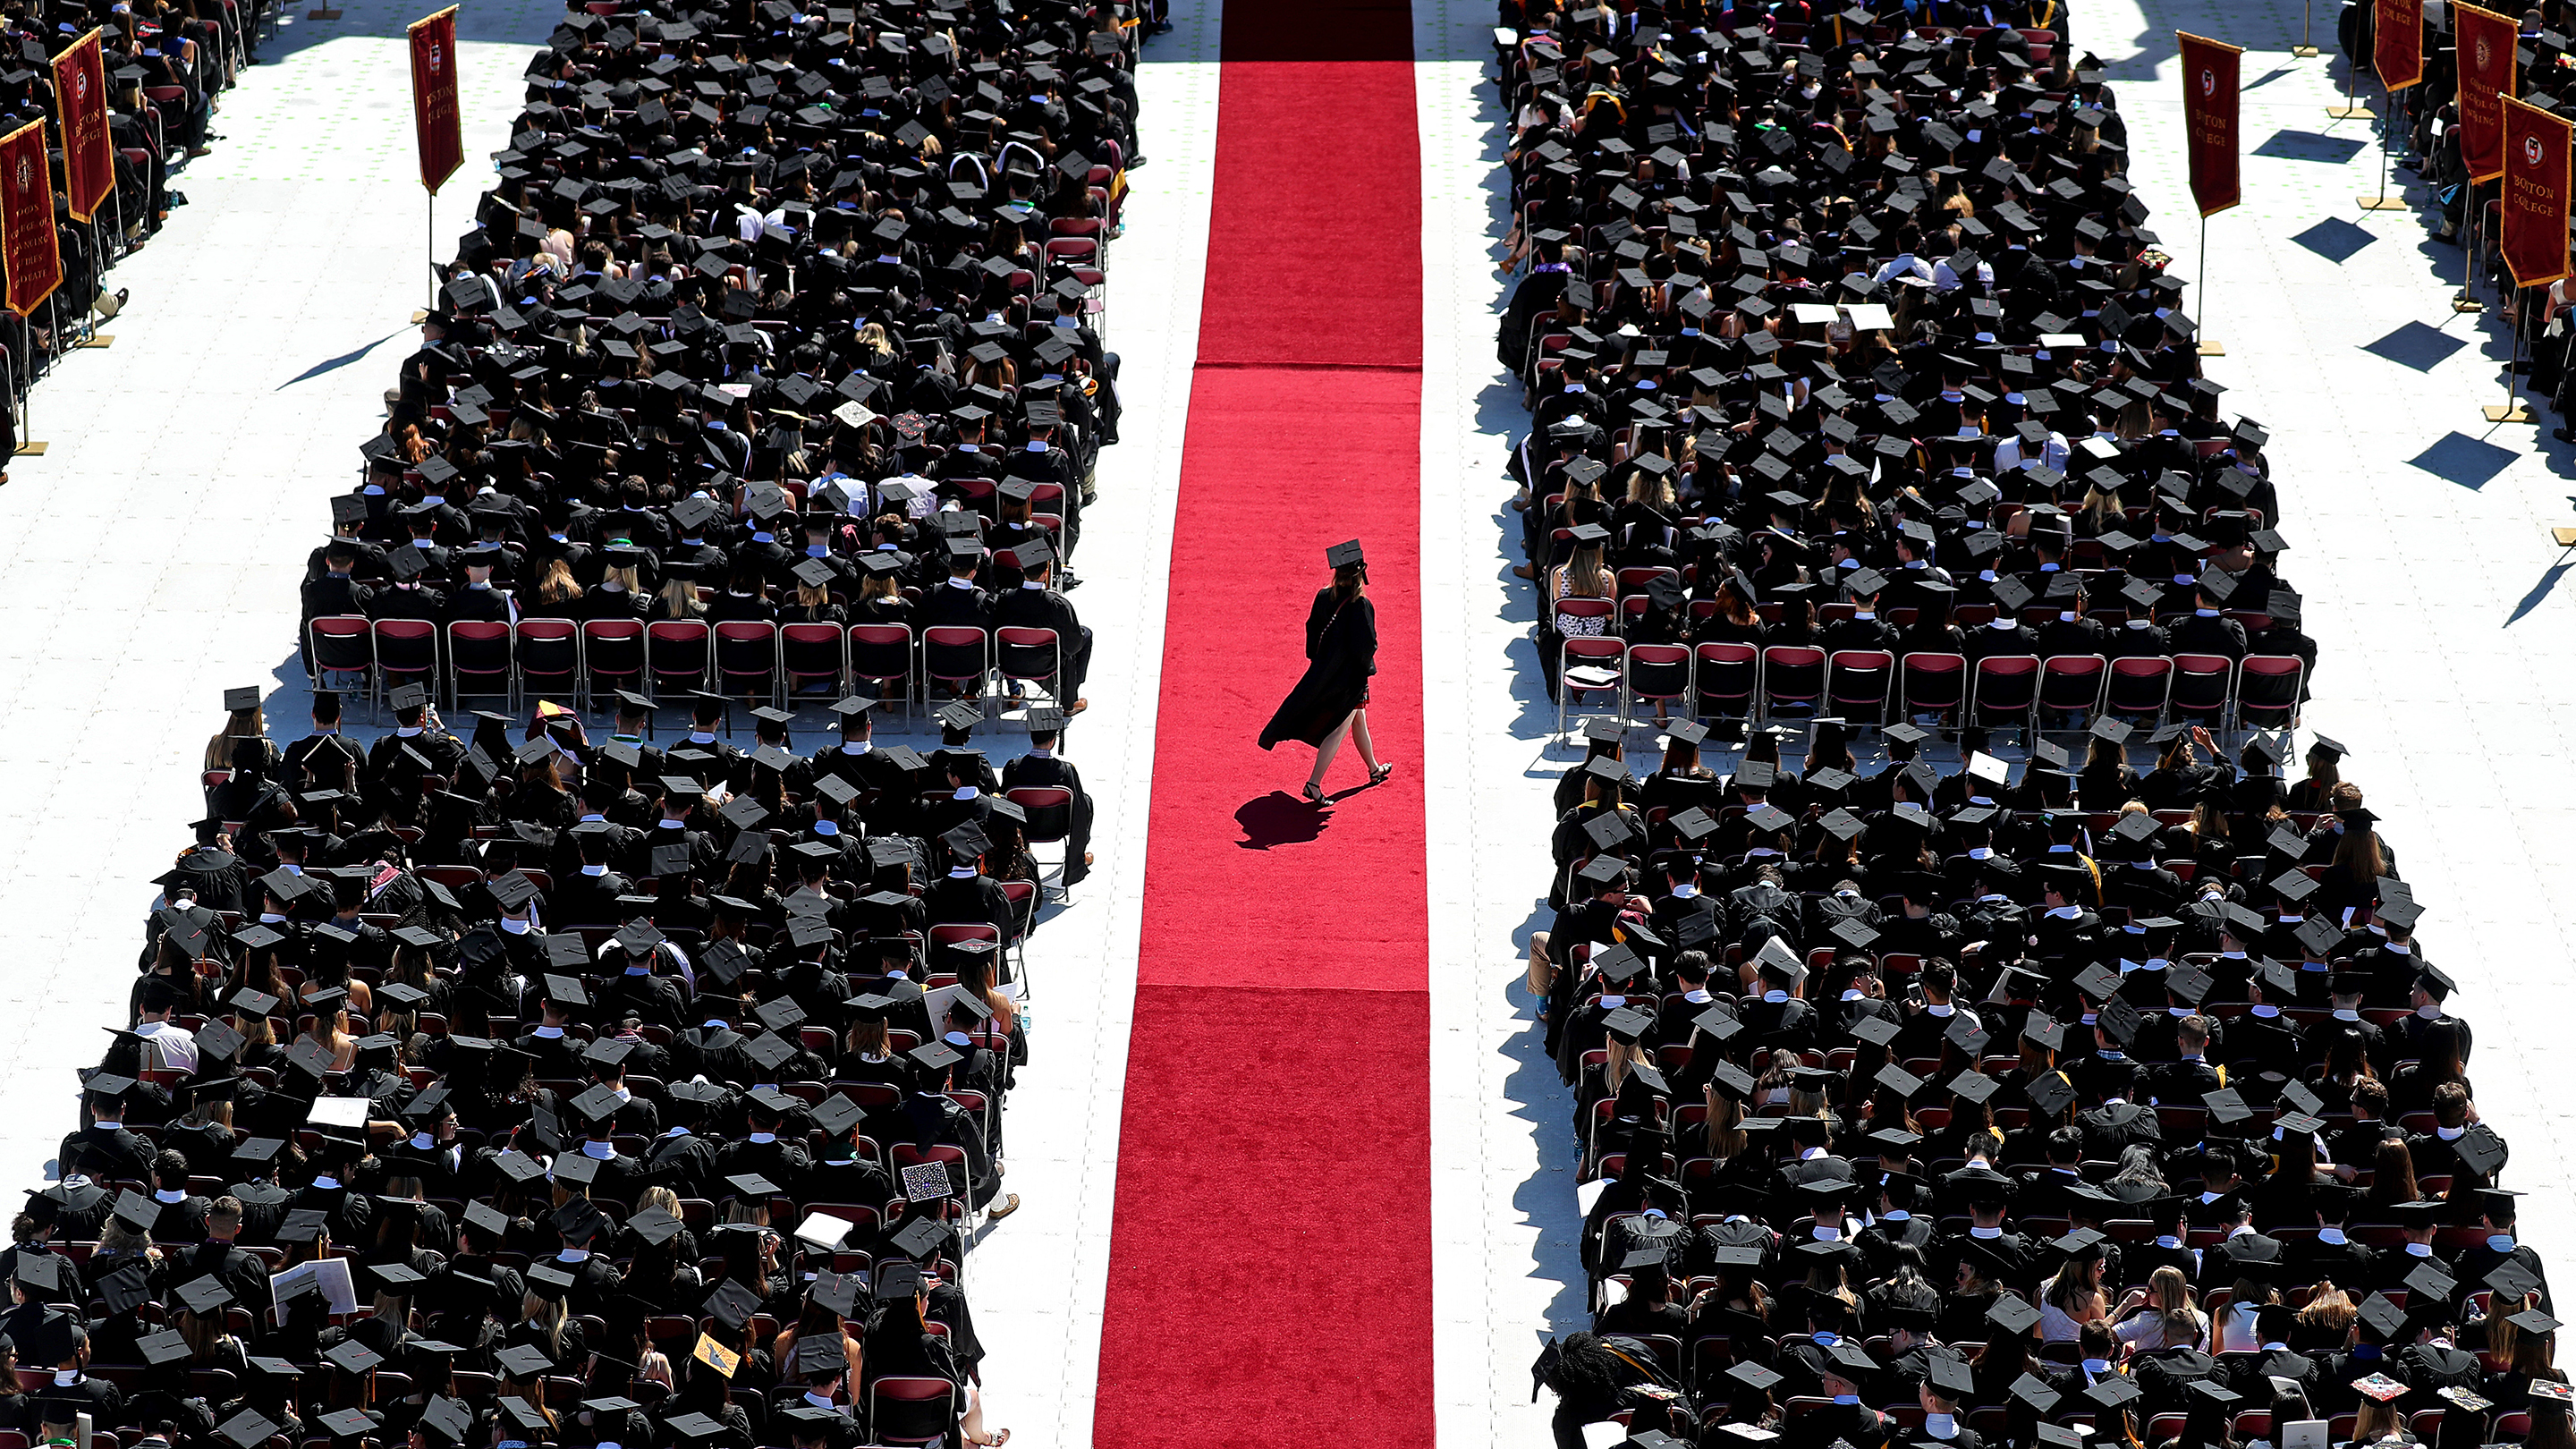 Humanities Degrees Can Secure High-Paying Jobs | Fortune